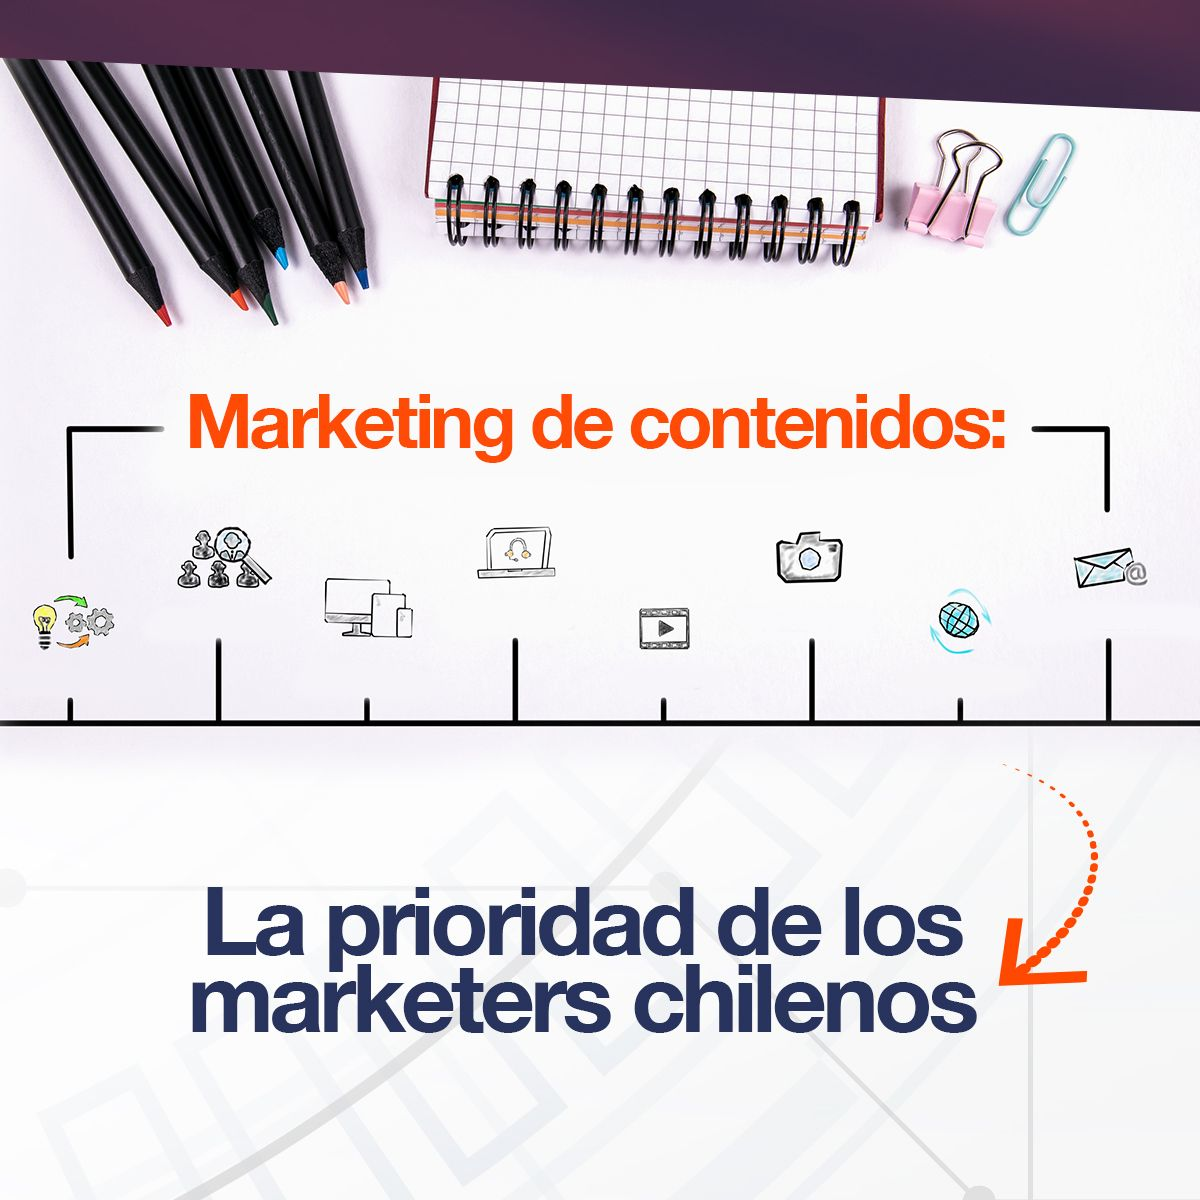 Marketing de contenidos: La prioridad de los marketers chilenos